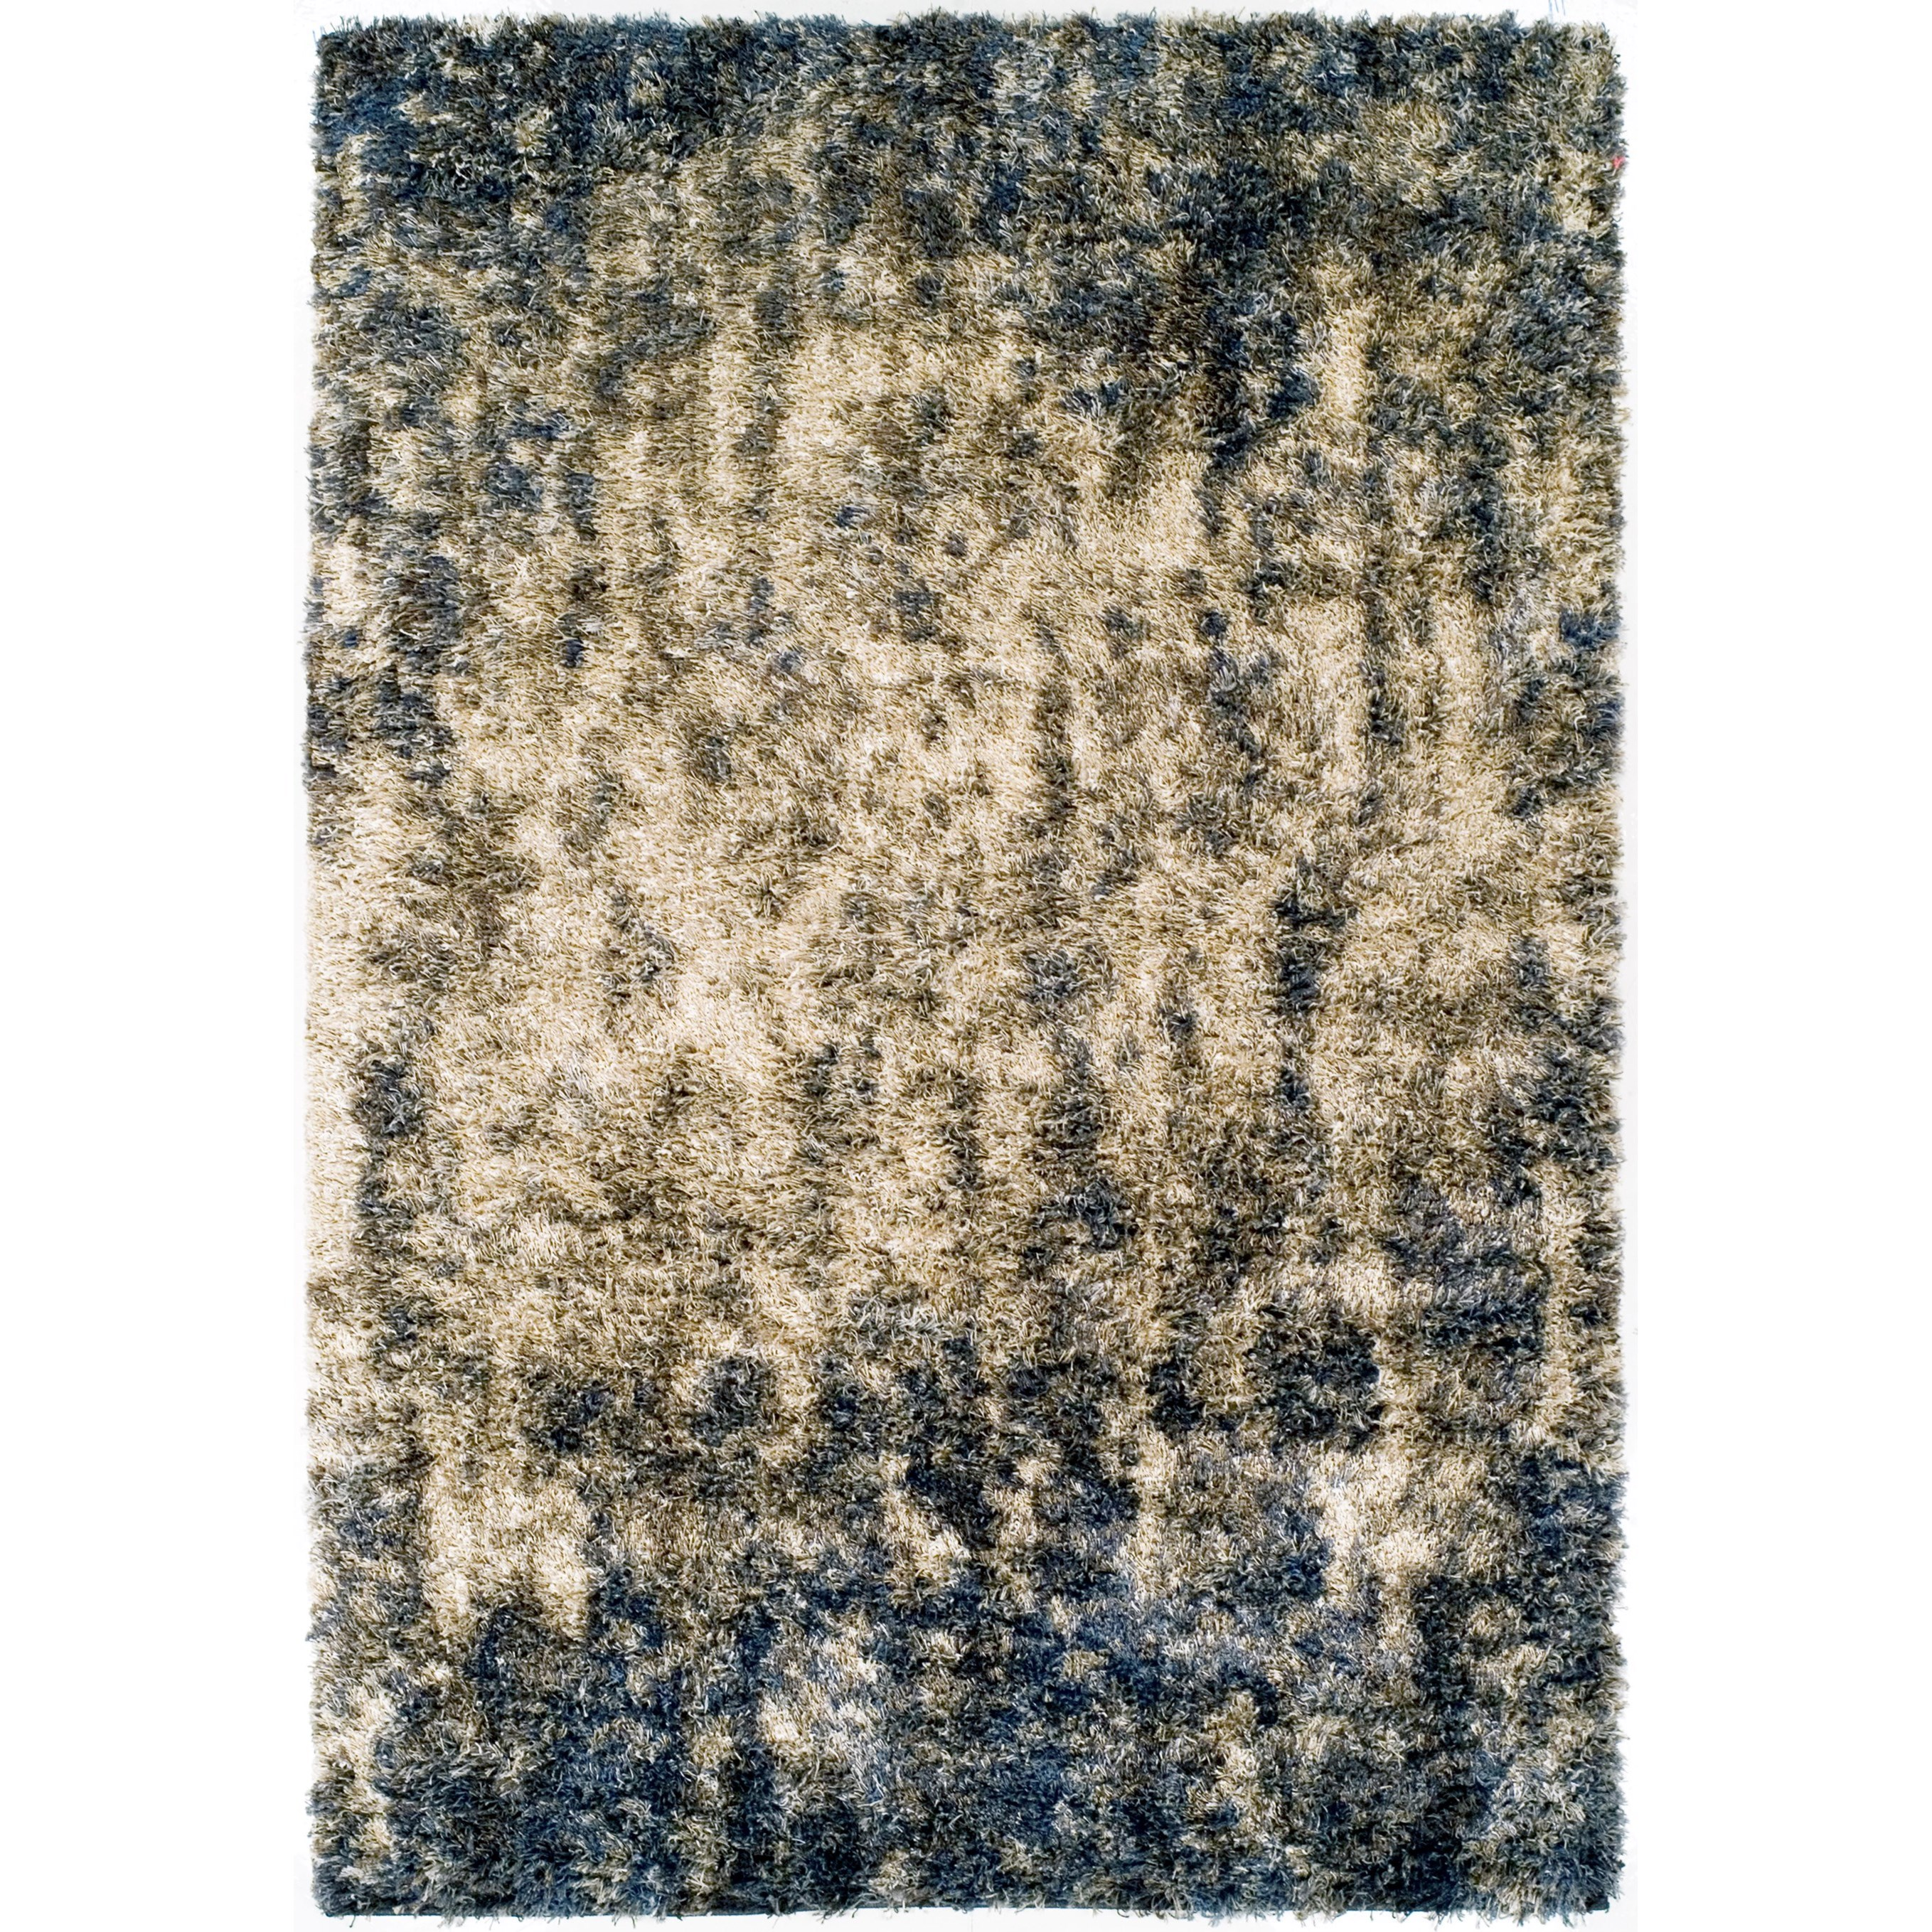 "Arturro Stone 5'3""X7'7"" Rug by Dalyn at Darvin Furniture"